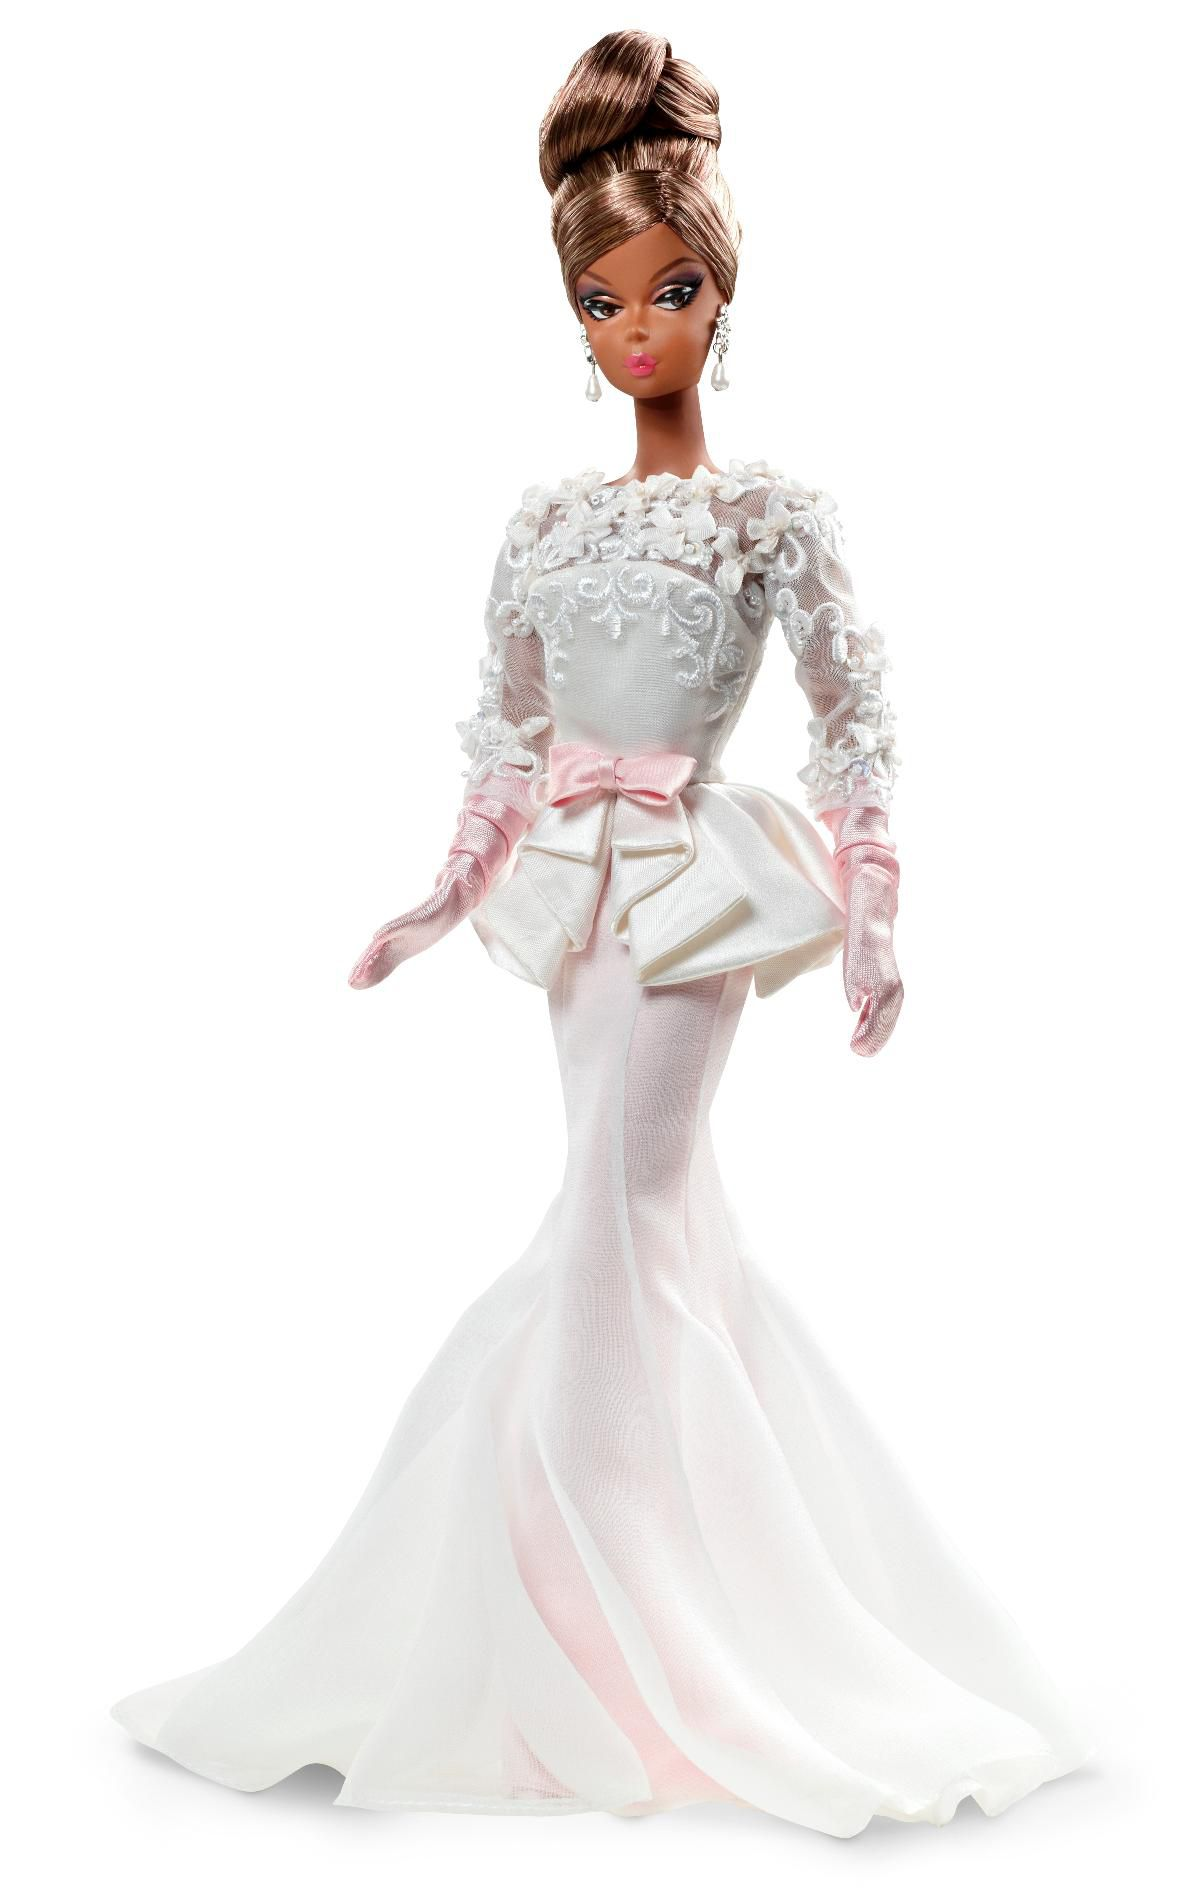 Evening Gown BARBIE® Doll Fashion Model